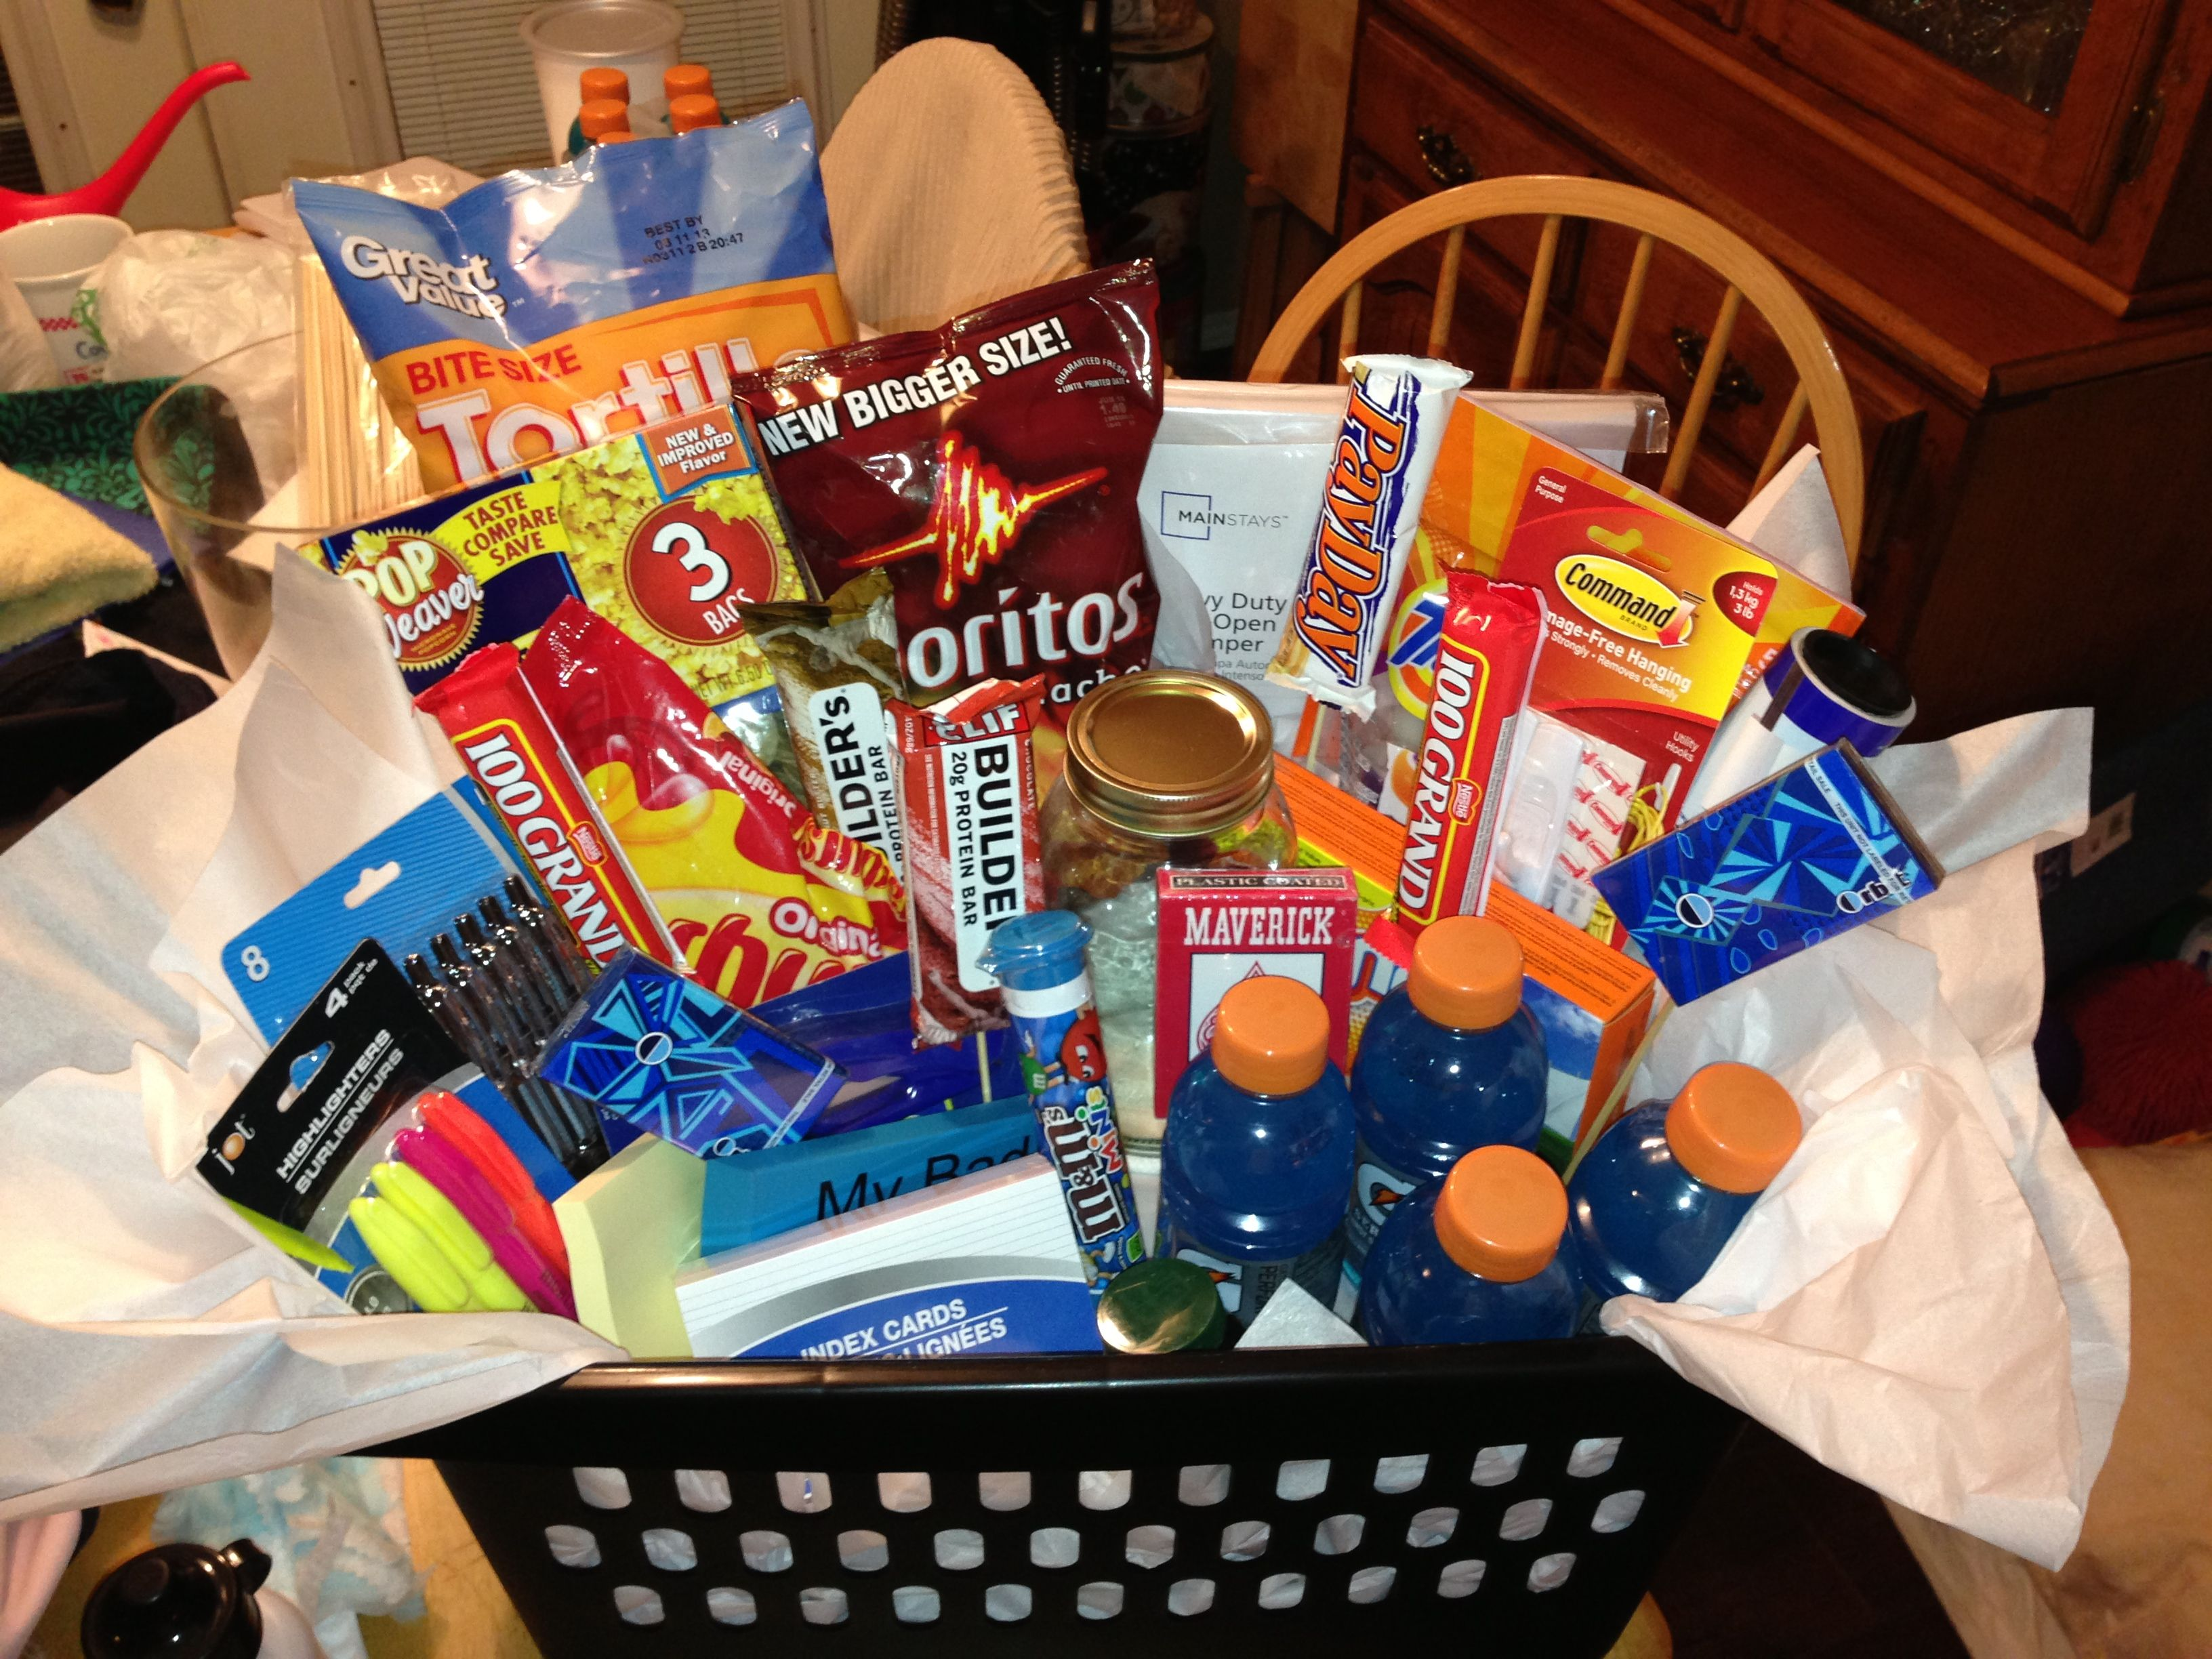 Pics photos funny college survival kit ideas - Graduation Gift College Survival Kit